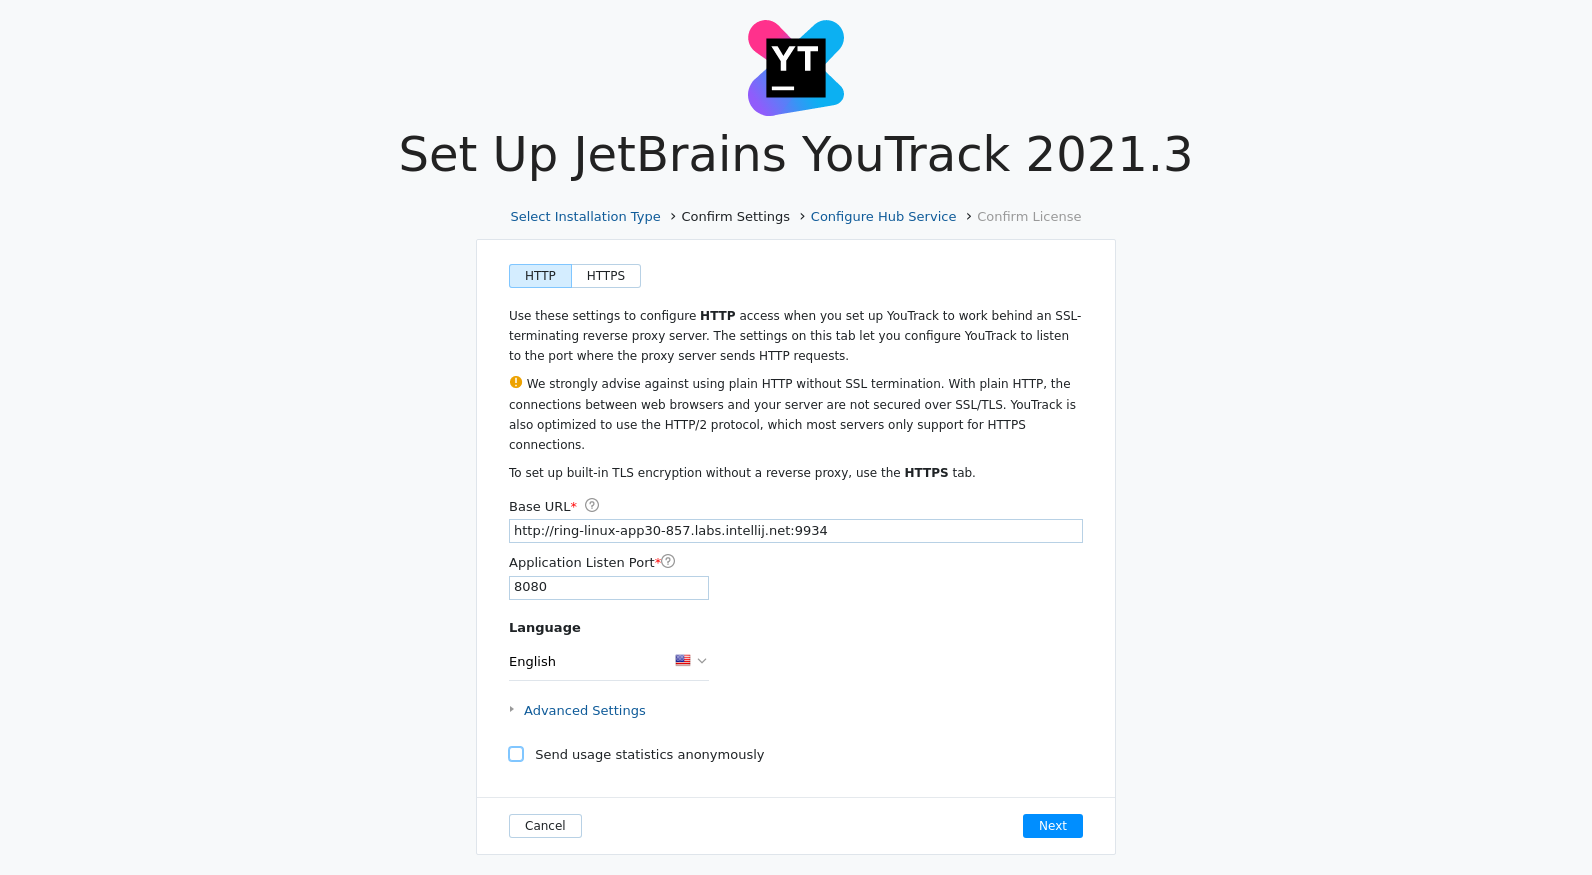 Install YouTrack confirm settings